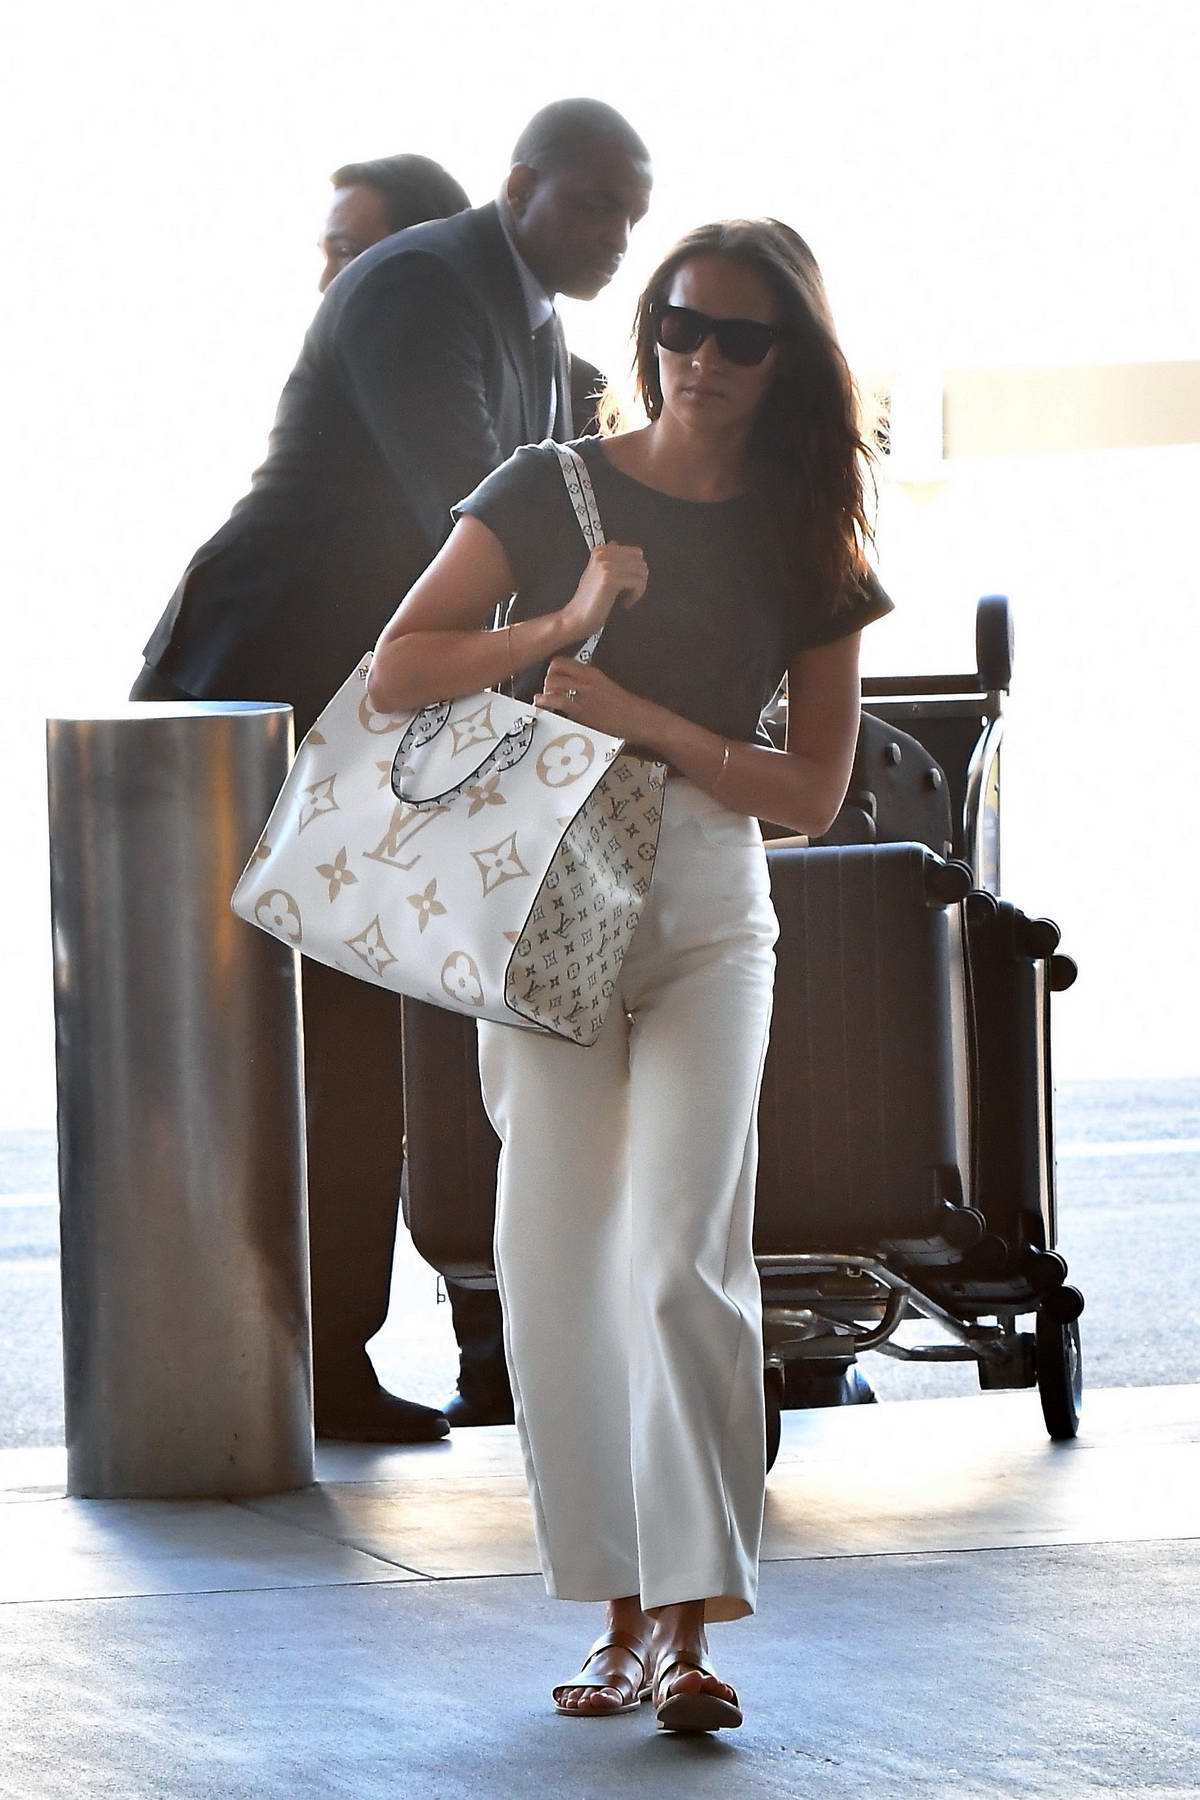 Alicia Vikander carries a large Louis Vuitton bag as she arrives at LAX Airport in Los Angeles